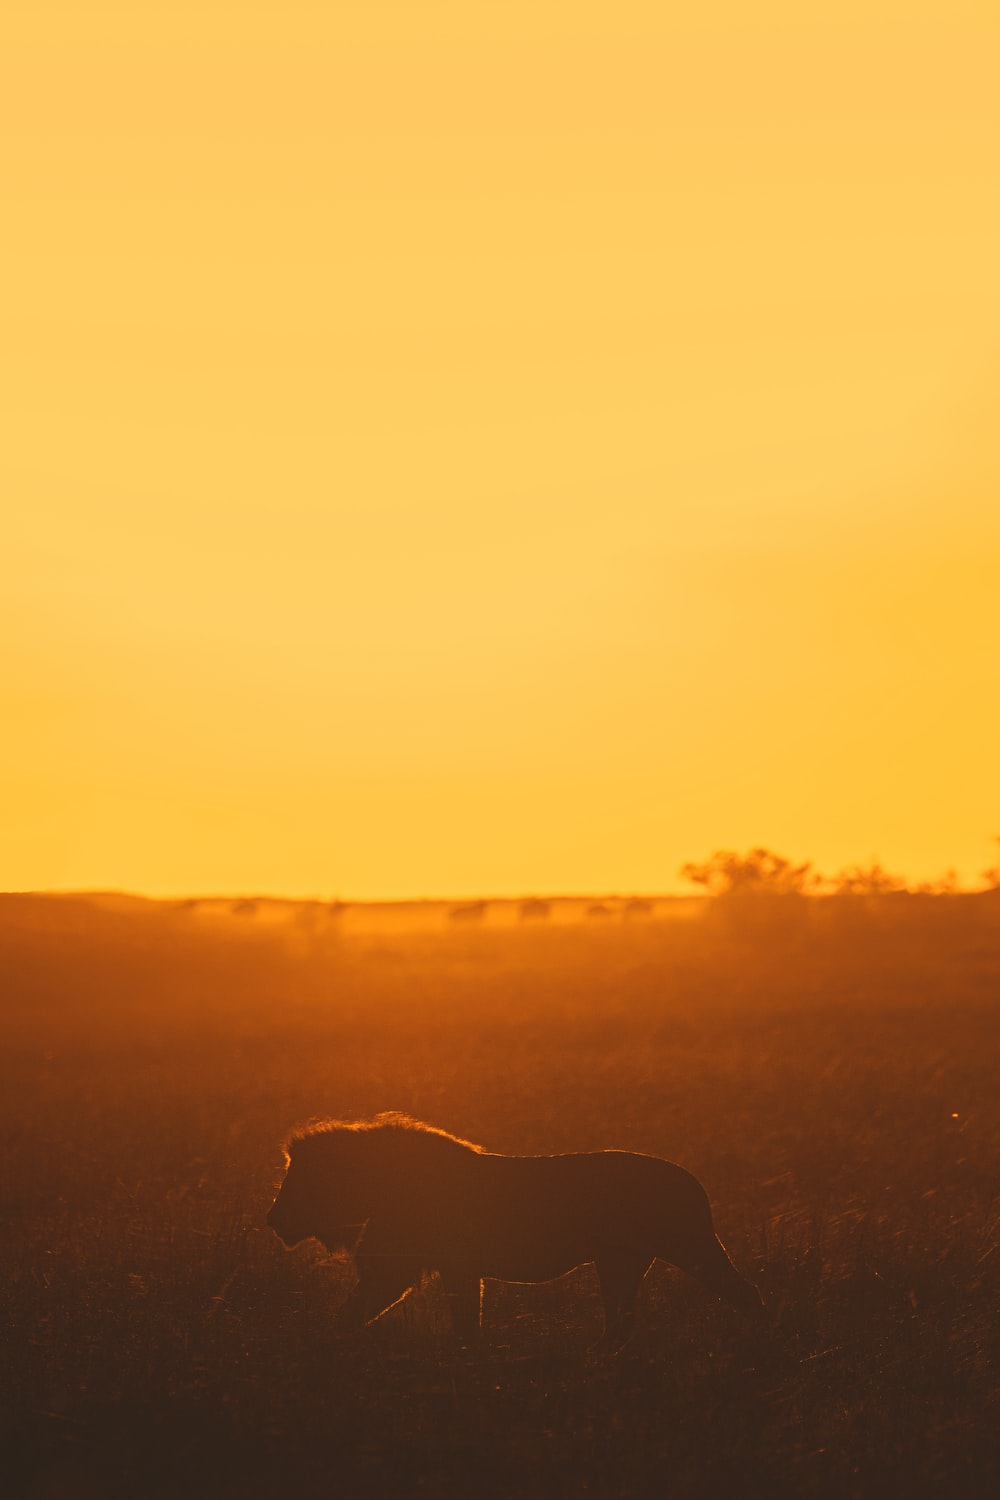 silhouette of dog during sunset